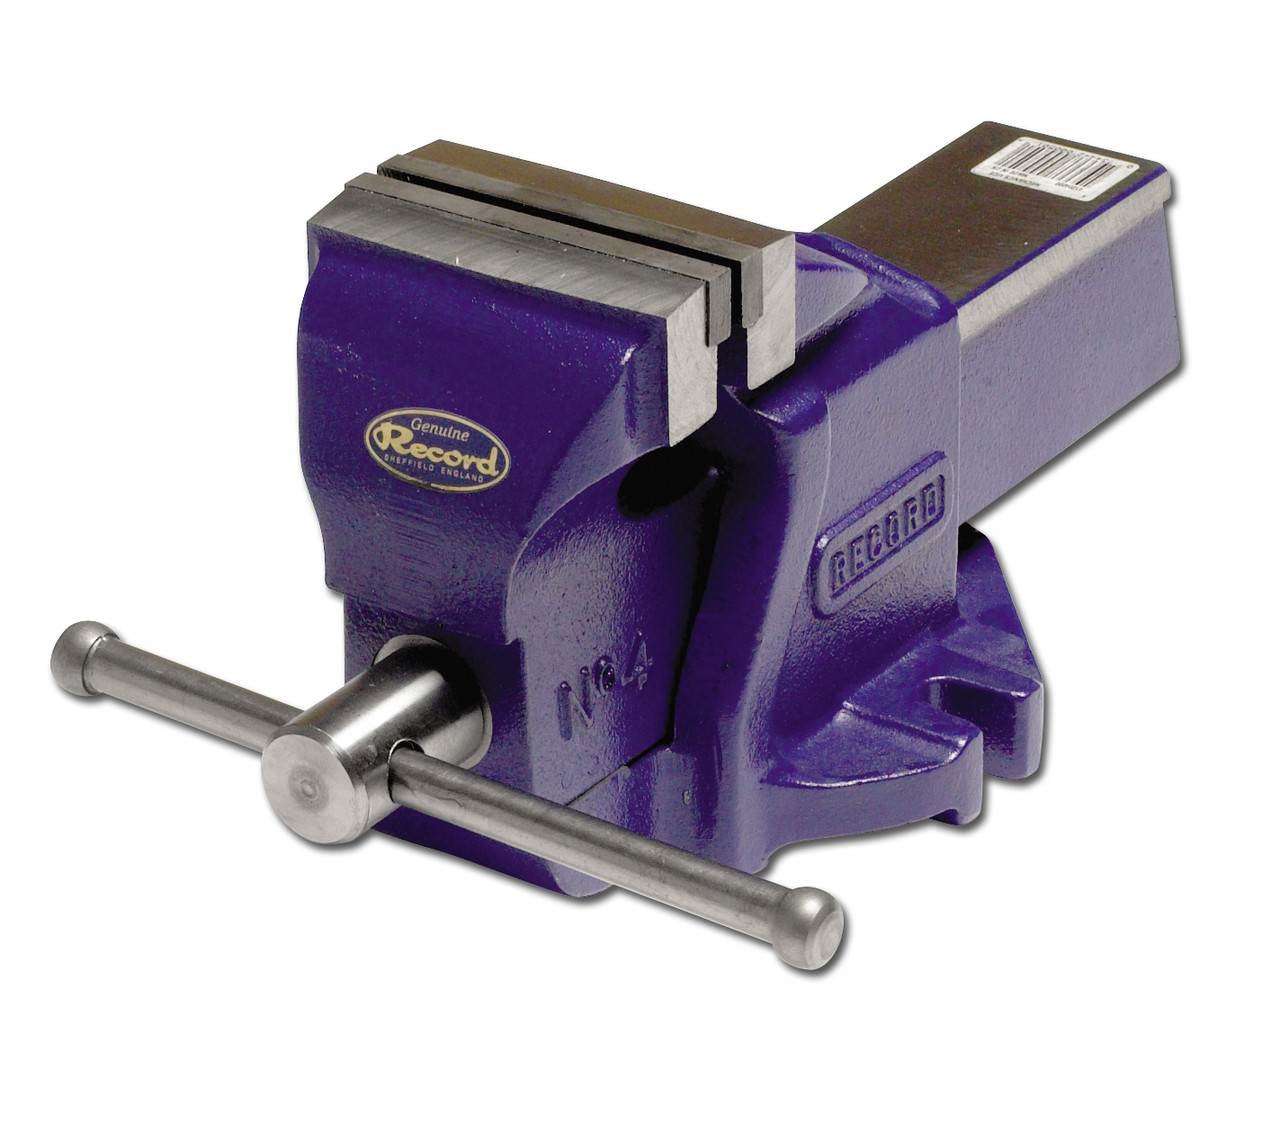 Buy Workshop Tools Online In Nigeria Record Bench Vice 4 Inch Heavy Duty Made In England